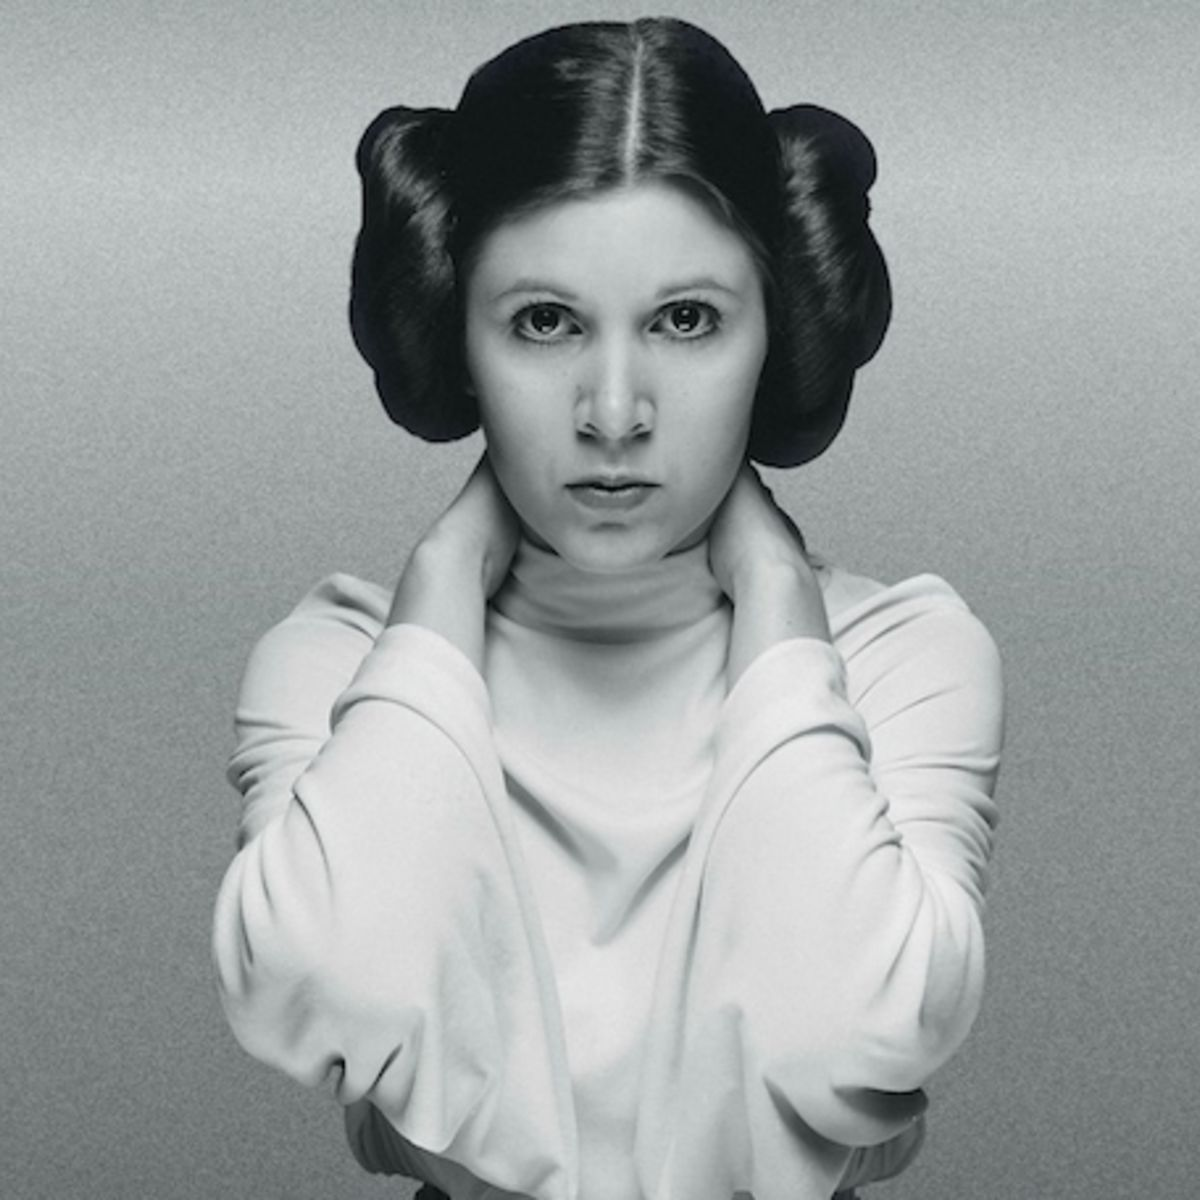 Princess-Leia.jpg